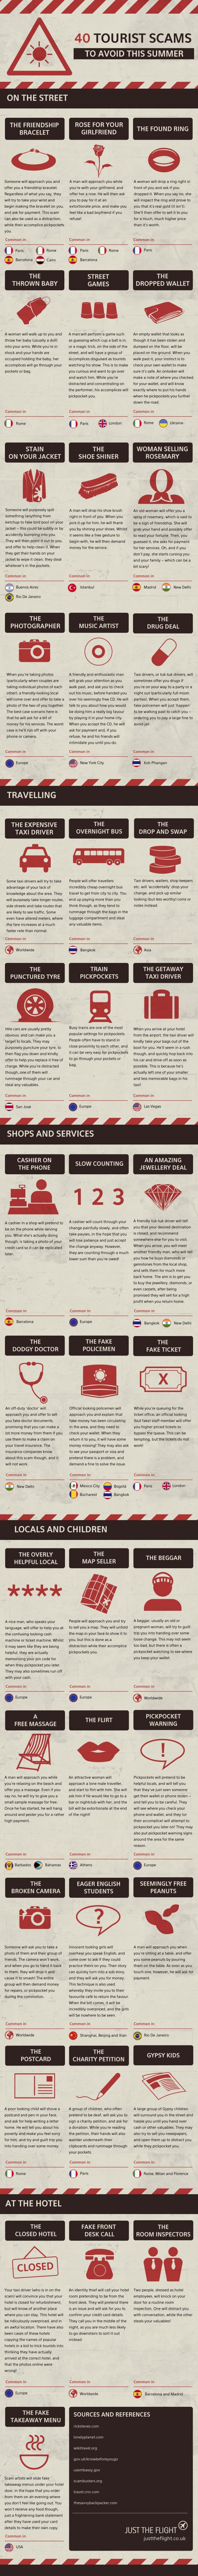 40 Most Notorious Tourist Scams | Daily Infographic